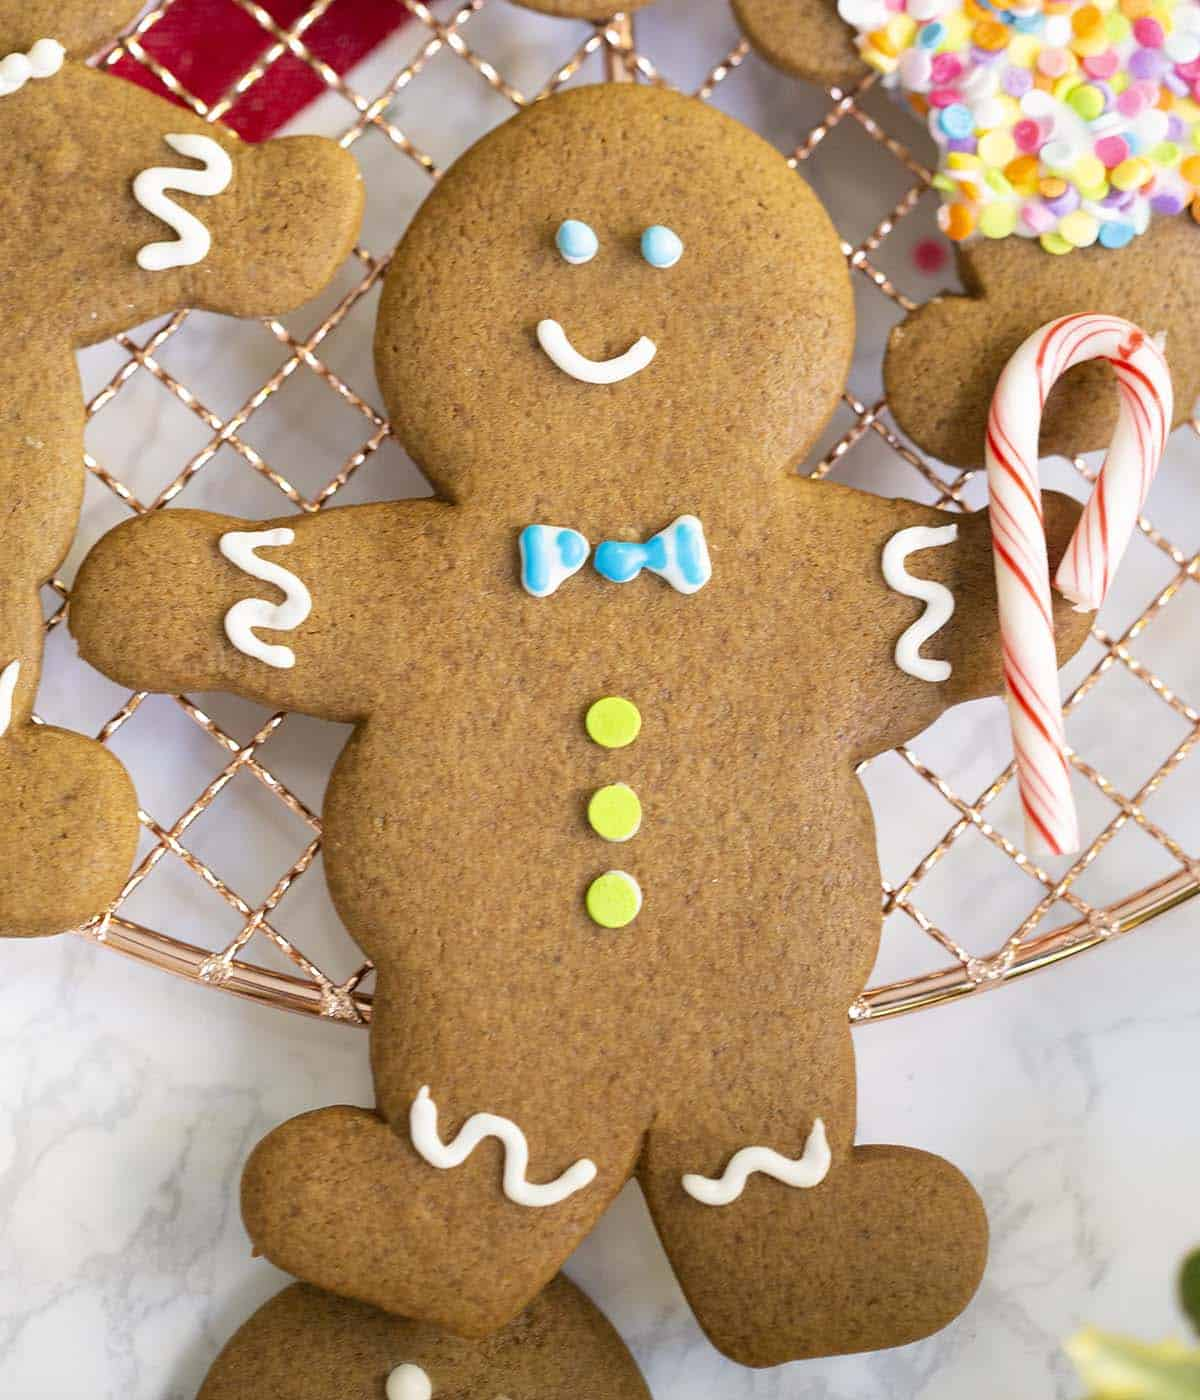 Two photos showing royal icing for gingerbread men being mixed then piped onto gingerbread cookies.